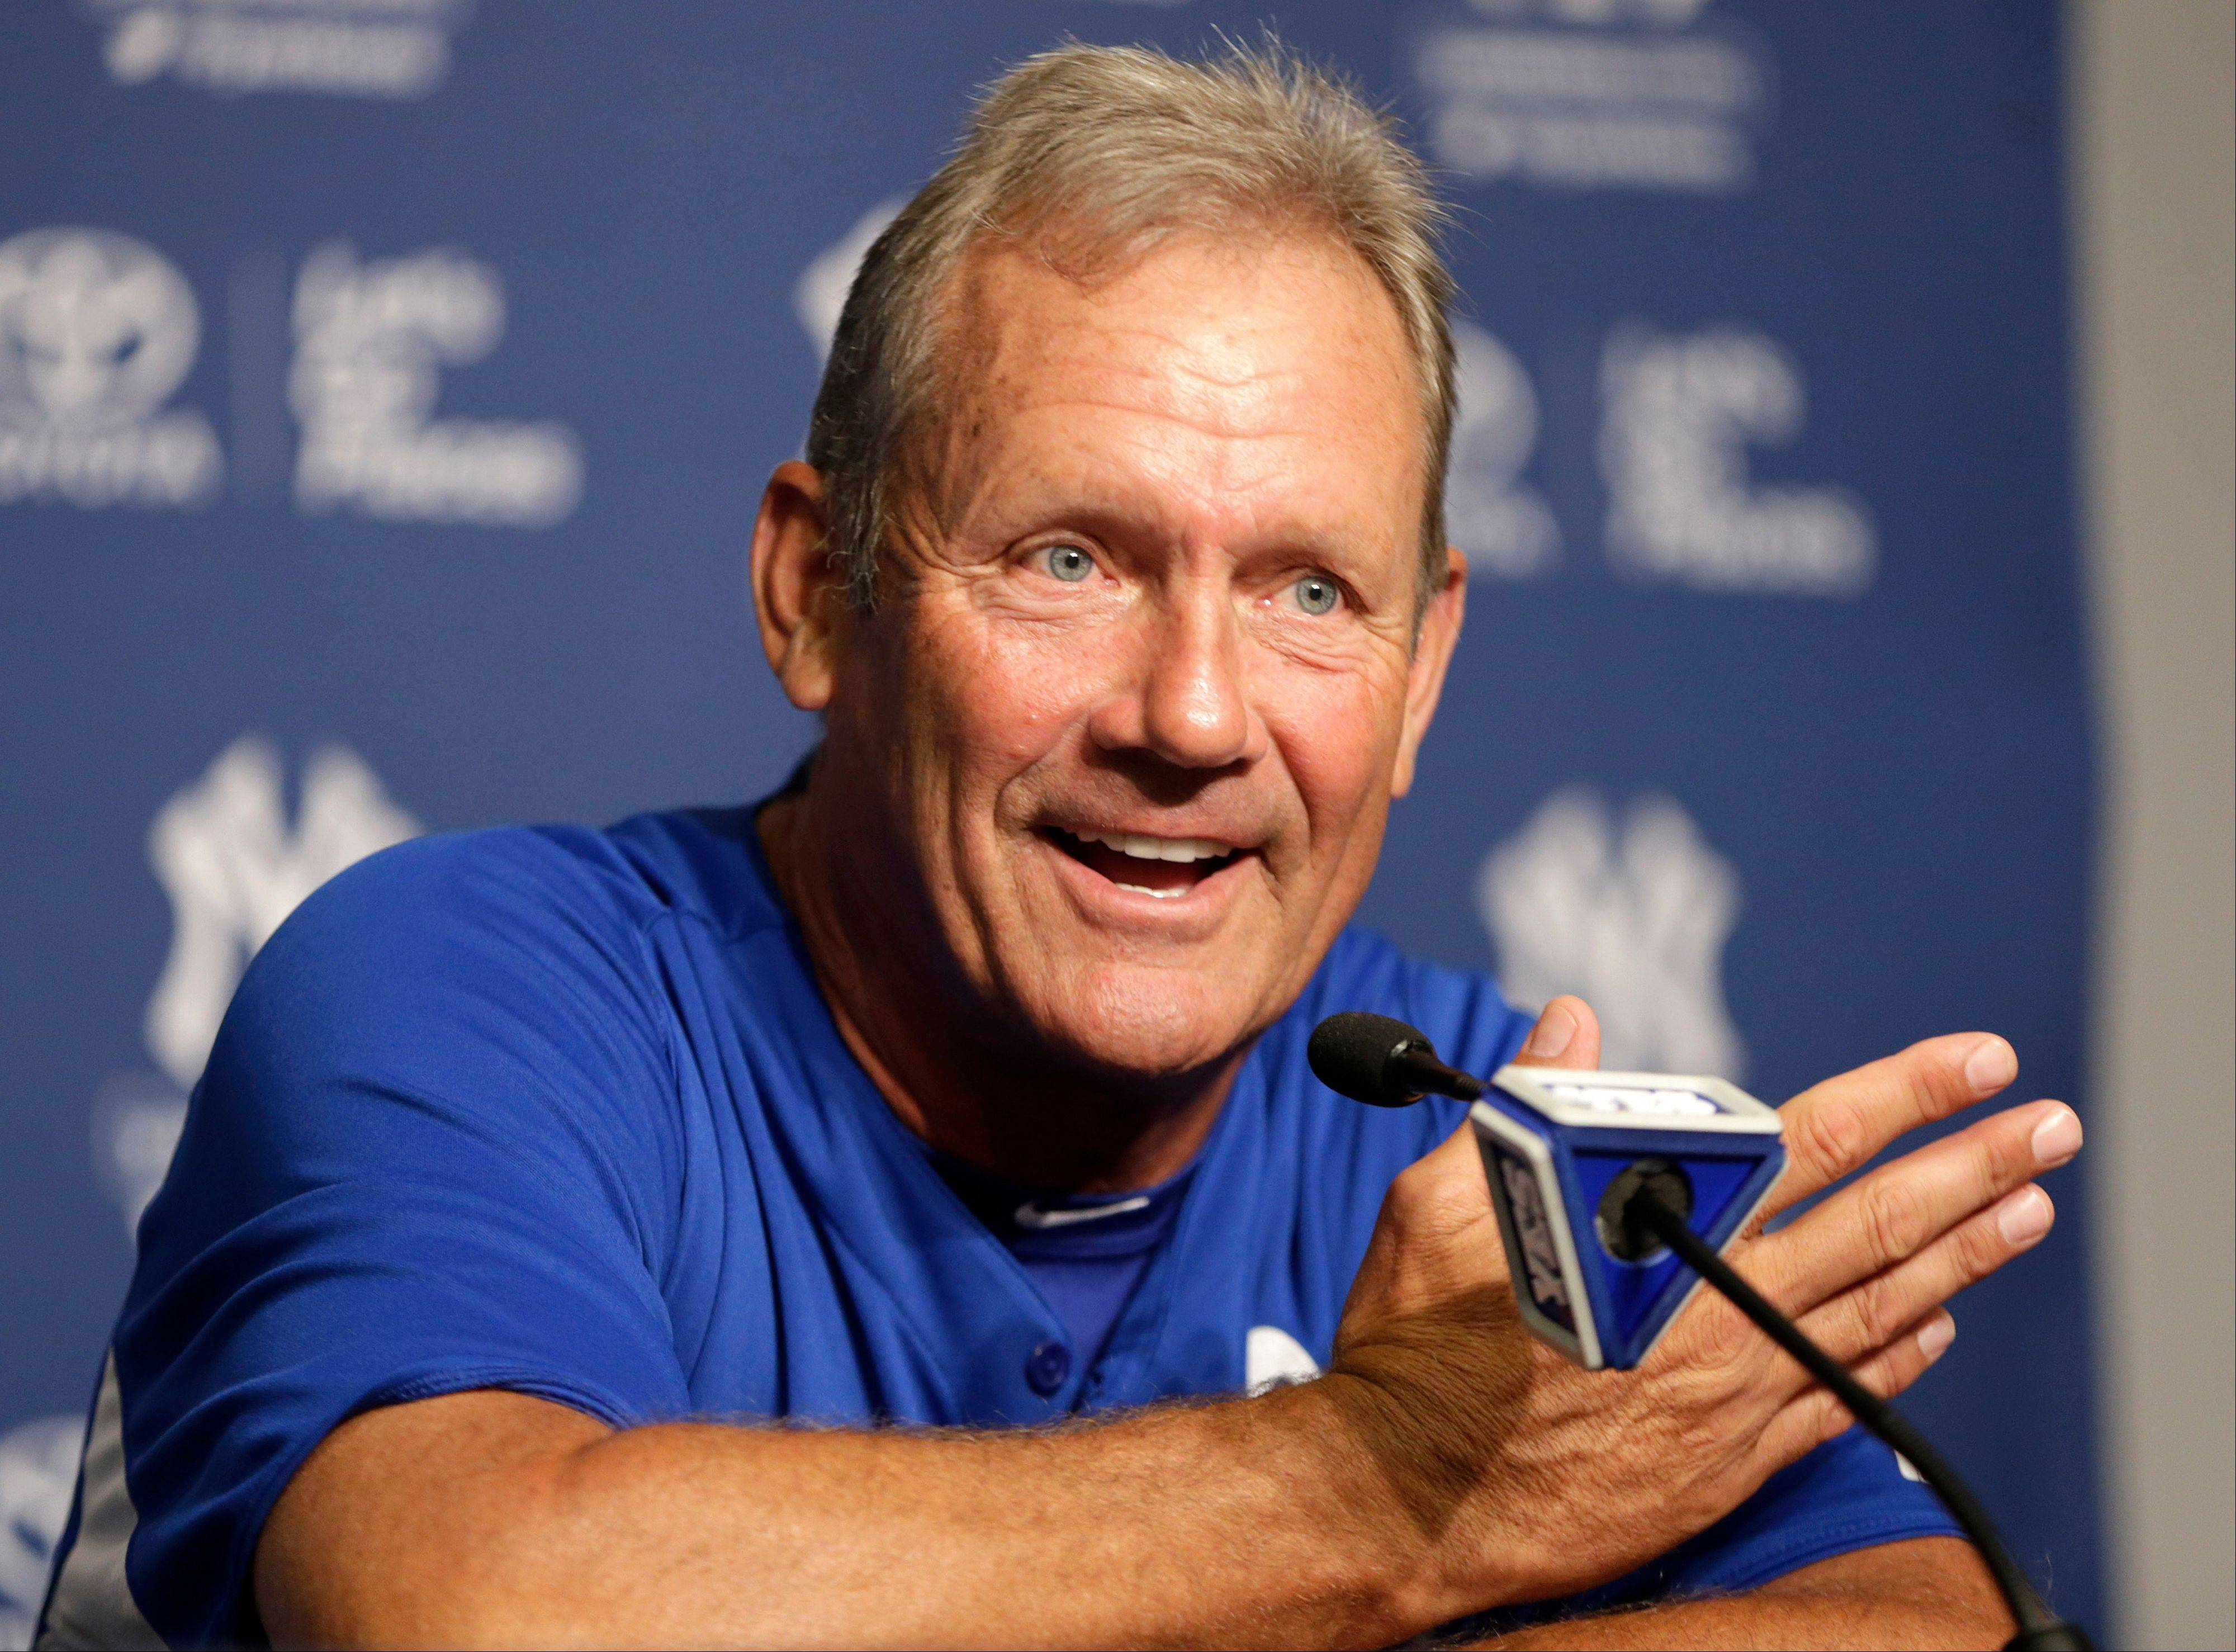 Hall of Famer George Brett discusses the pine tar game during a news conference at Yankee Stadium in New York. The 30th anniversary of the game is Wednesday.